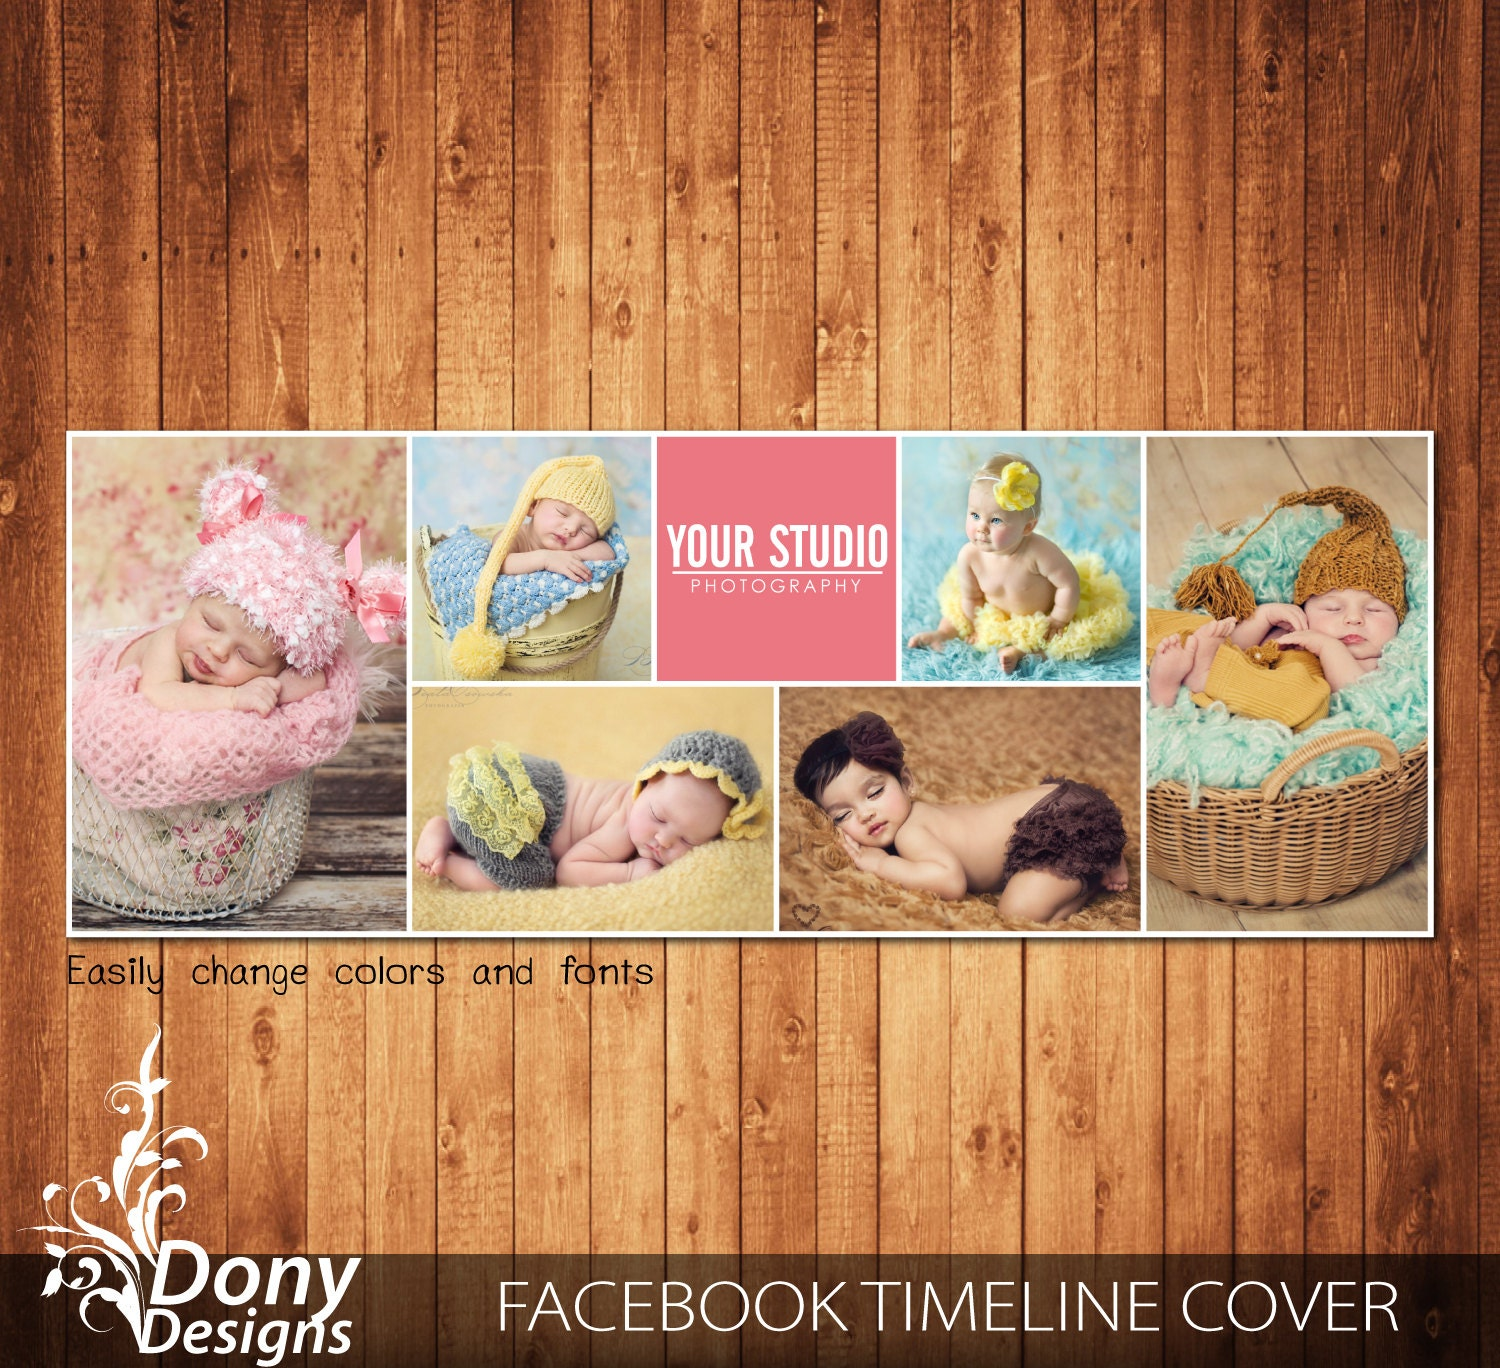 Facebook timeline cover template photo collage Photoshop